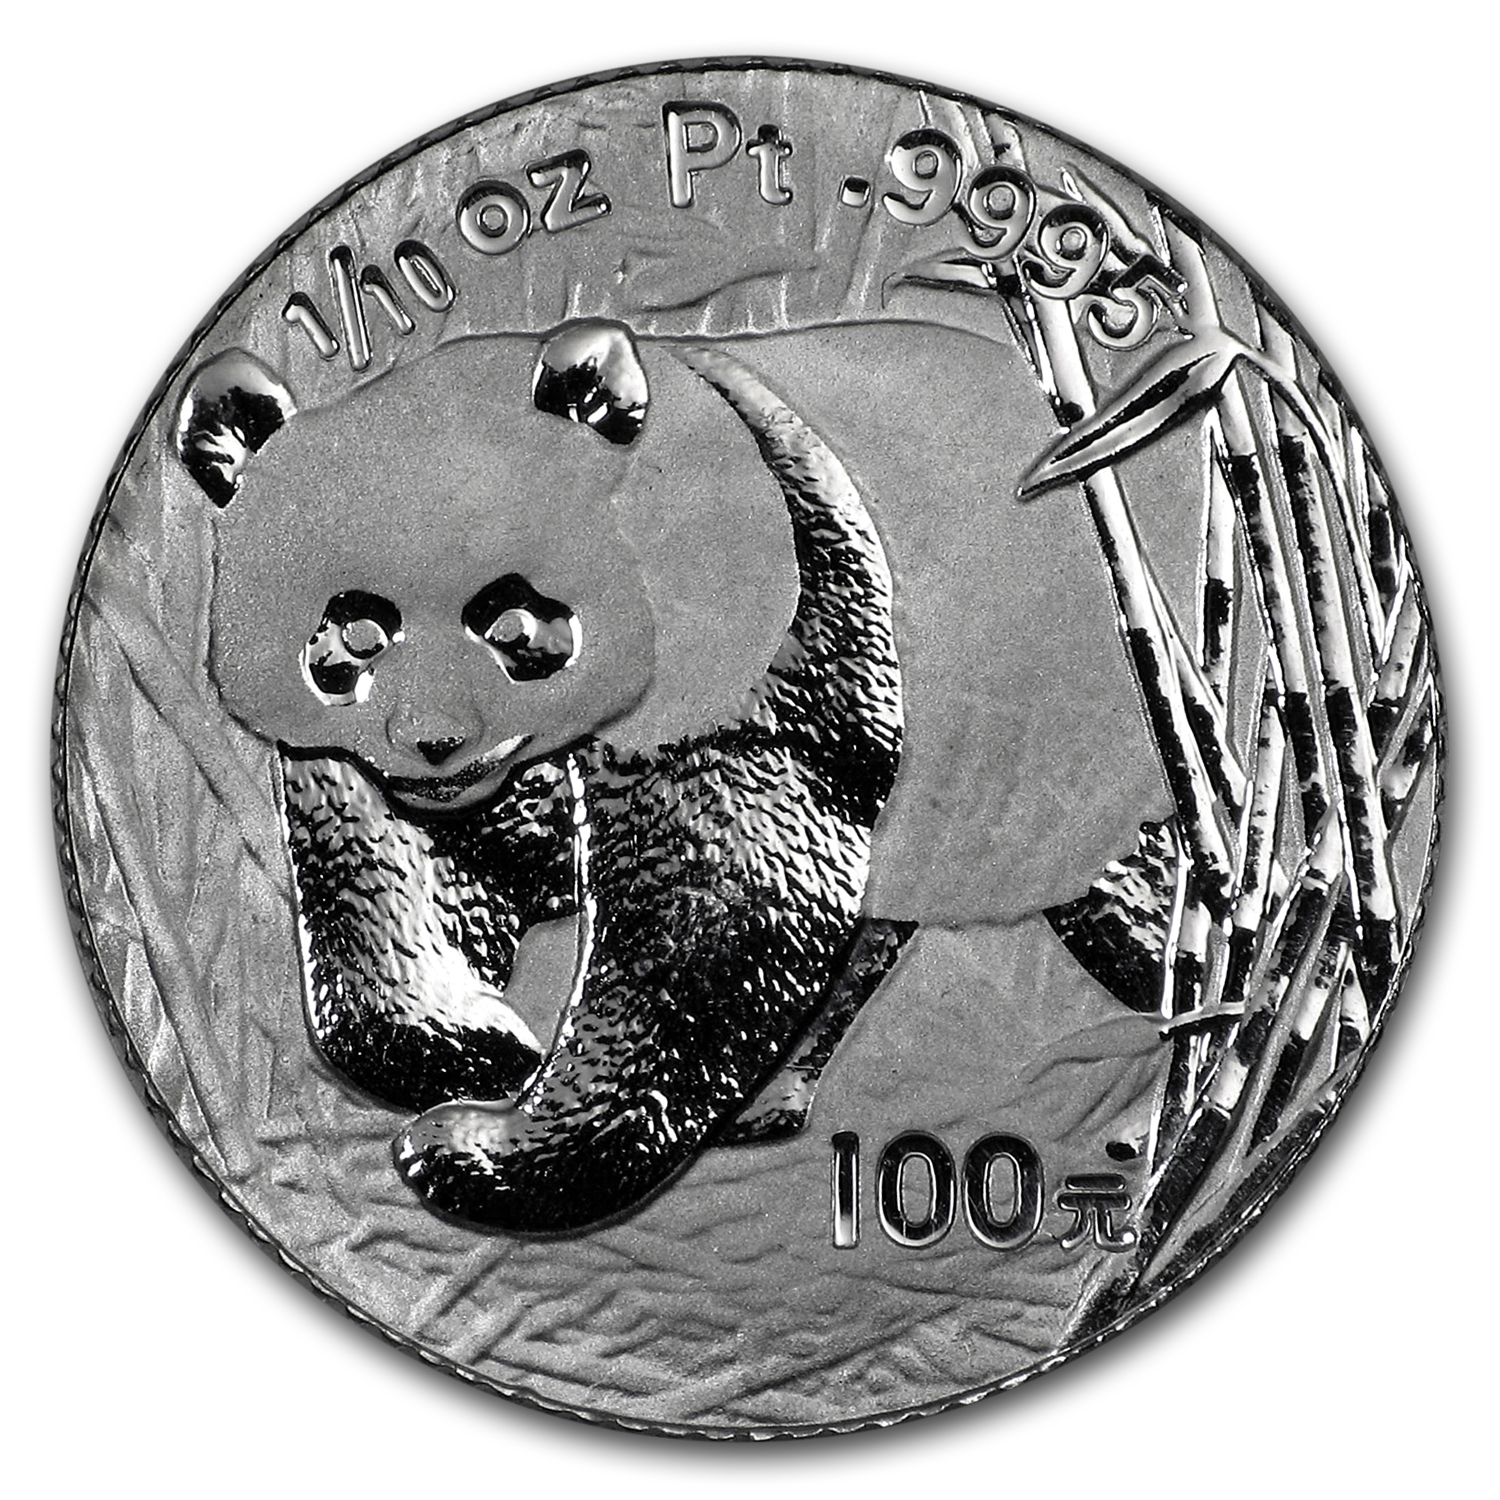 2002 1/10 oz Proof Platinum Chinese Panda (w/Box & COA)